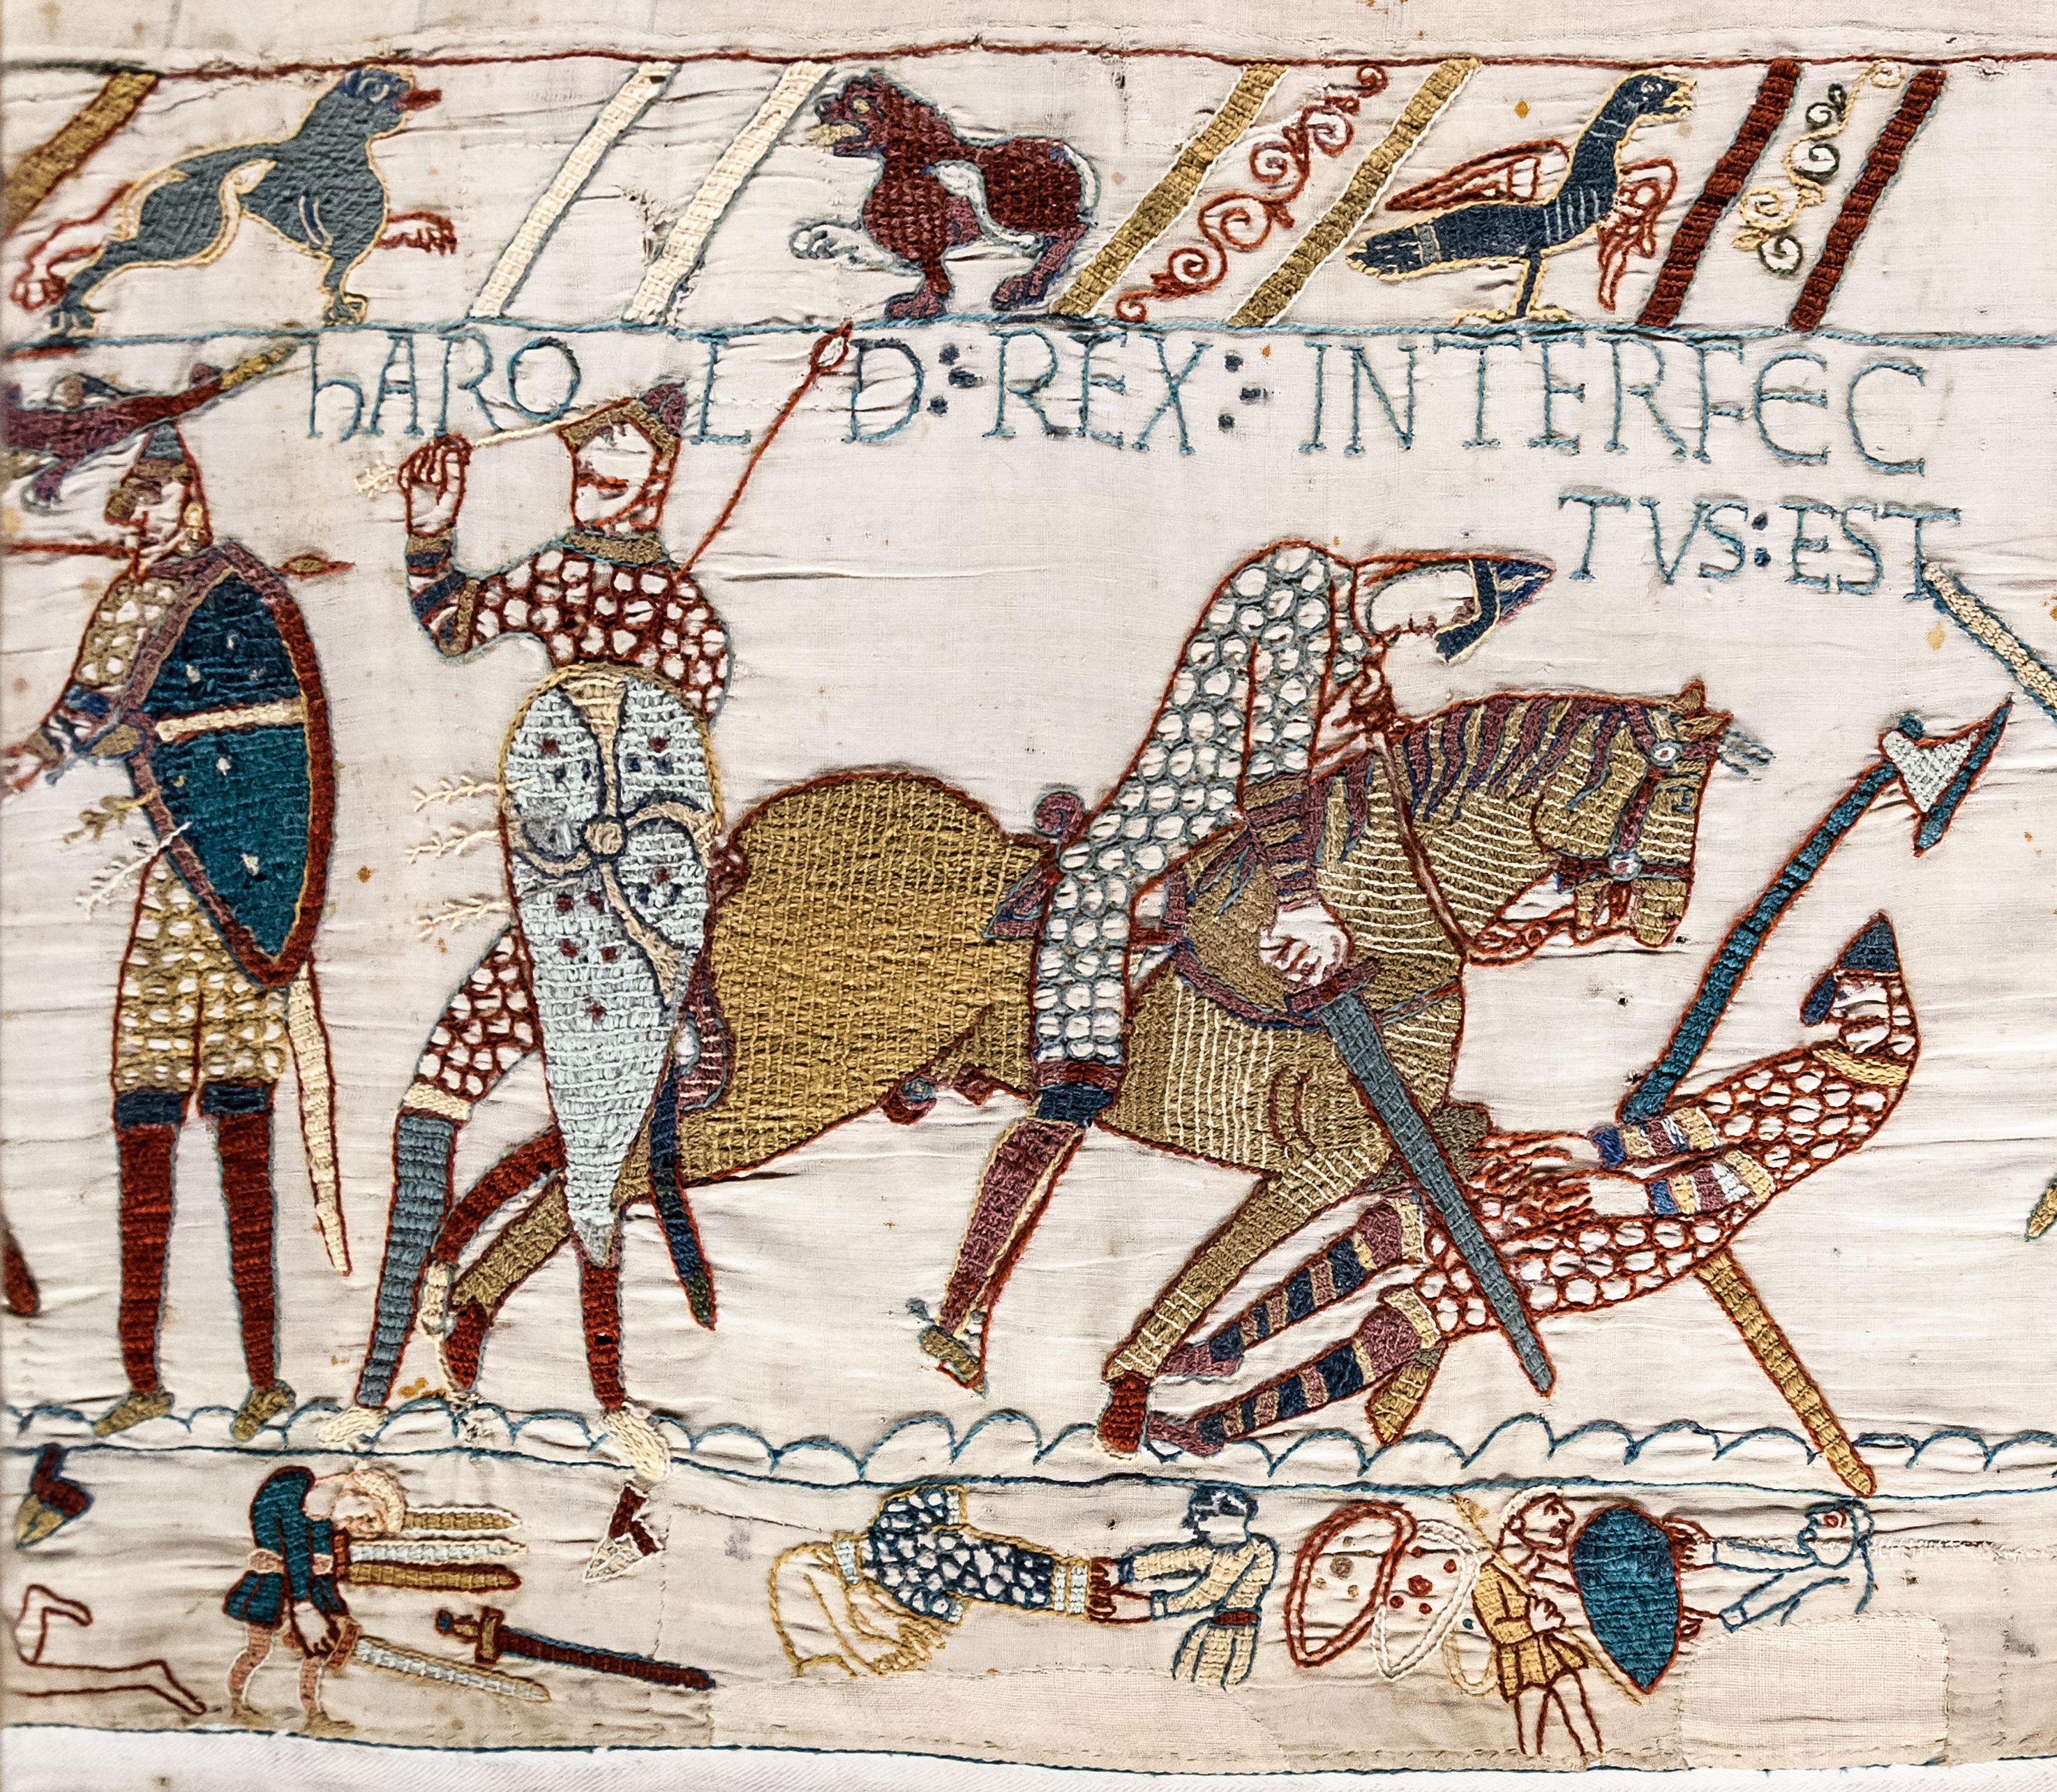 http://upload.wikimedia.org/wikipedia/commons/b/bb/Bayeux_Tapestry_scene57_Harold_death.jpg